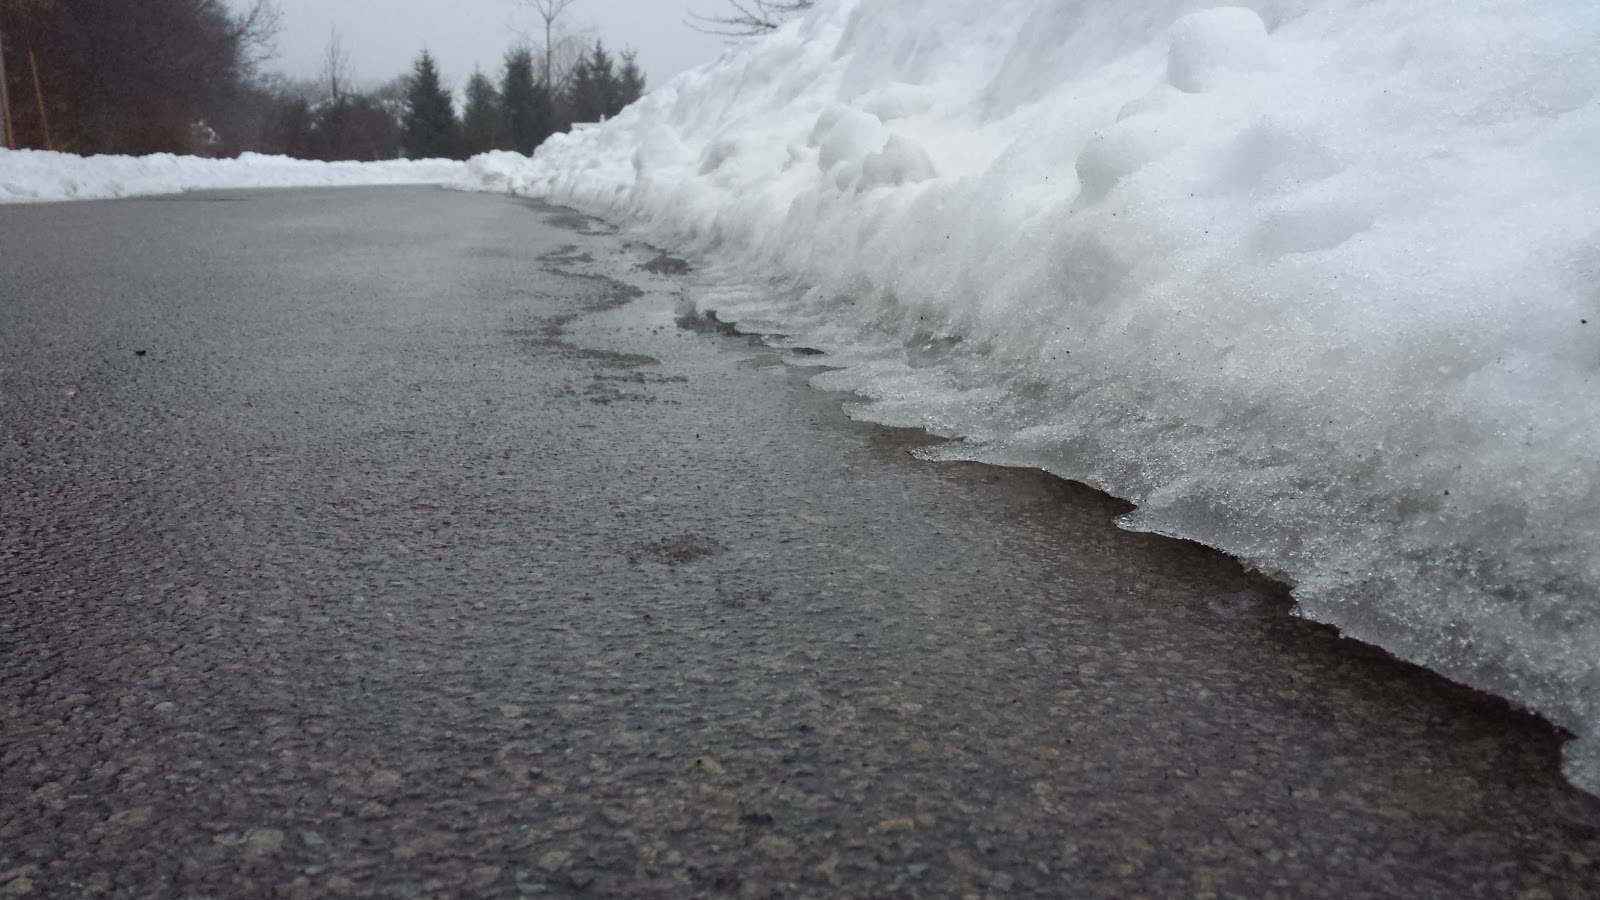 the separation of snow and ice from the road surface